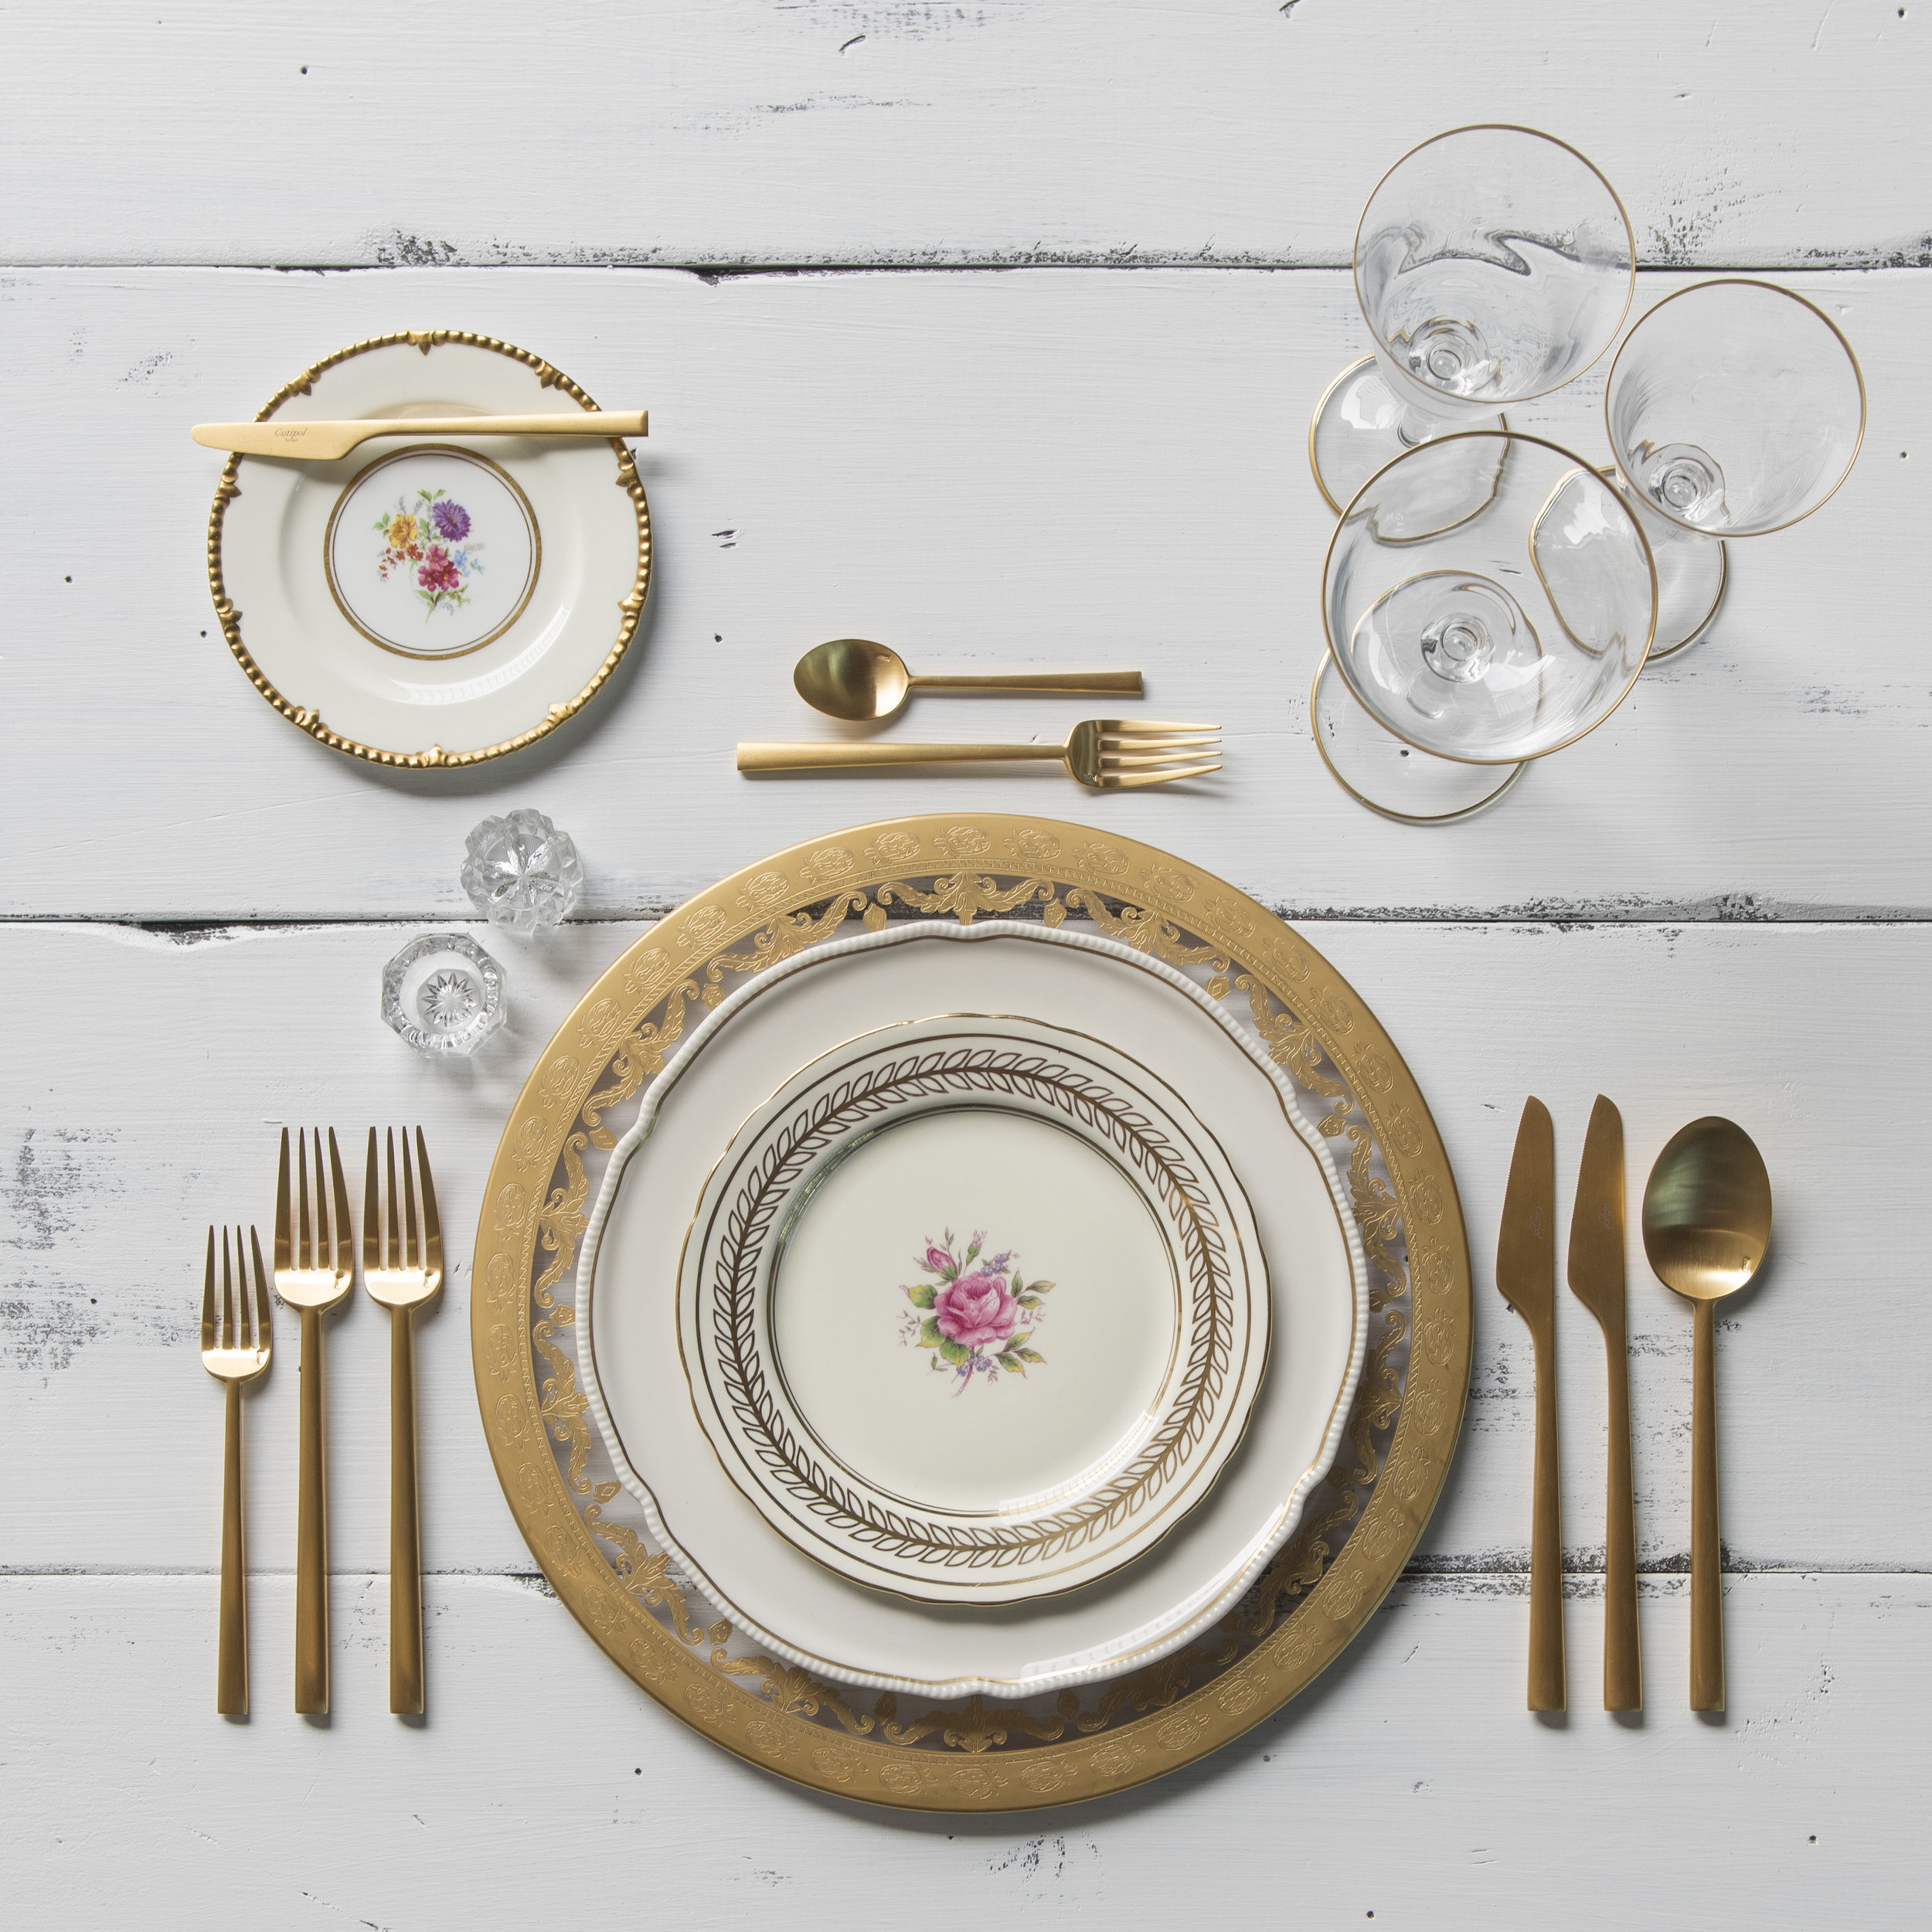 RENT: Versailles Glass Chargers in 24k Gold + White Botanicals Vintage China + Rondo Flatware in Brushed 24k Gold + Chloe 24k Gold Rimmed Stemware + Antique Crystal Salt Cellars  SHOP:Rondo Flatware in Brushed 24k Gold + Chloe 24k Gold Rimmed Stemware